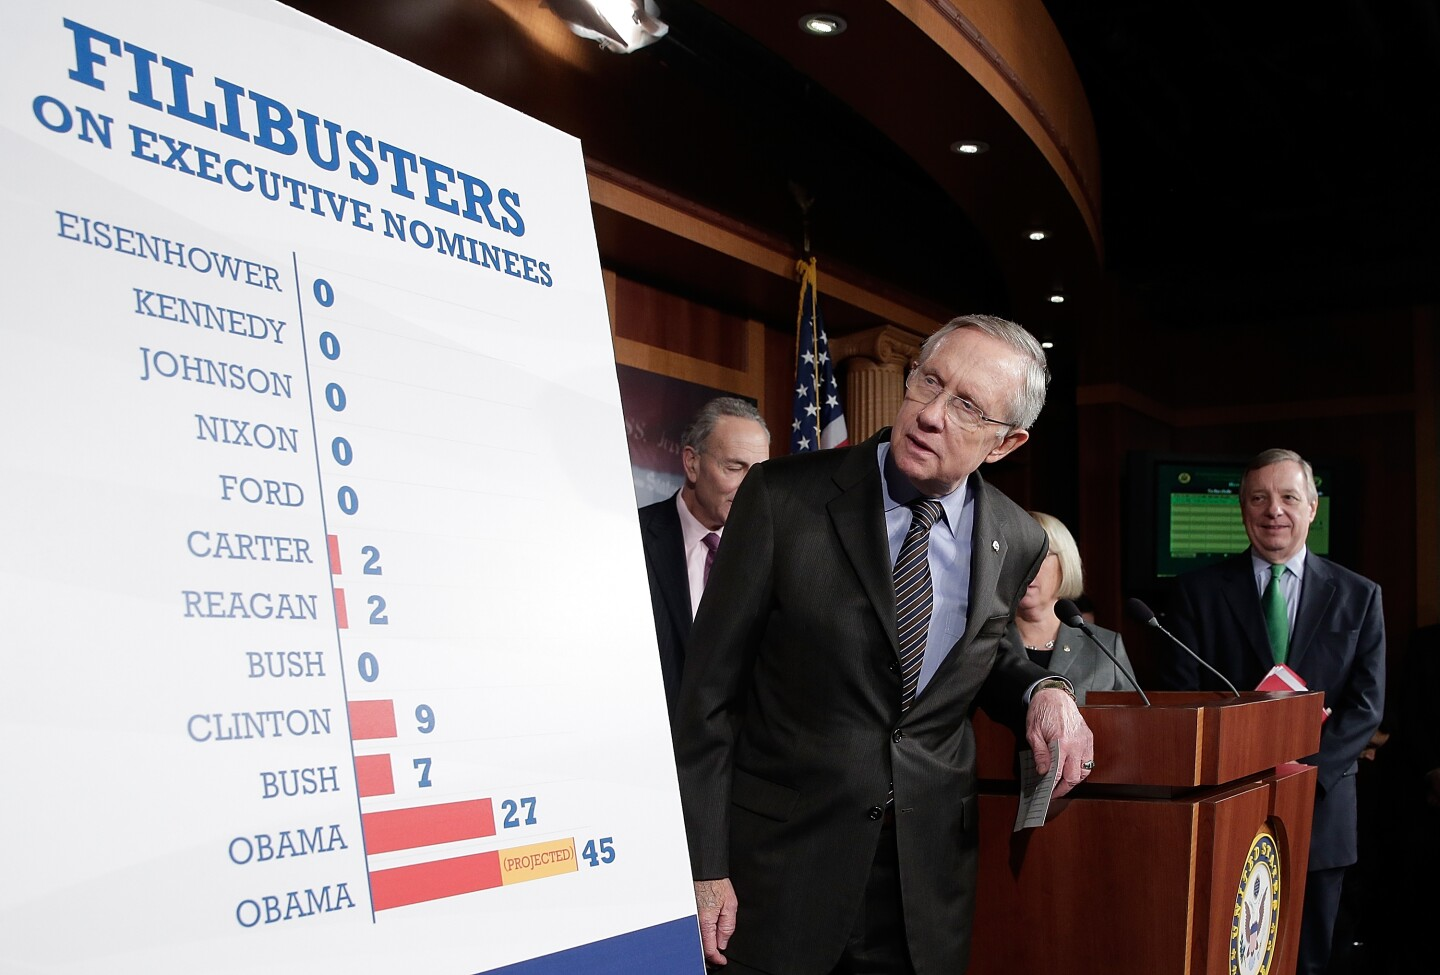 Getty Images - Filibuster - Harry Reid